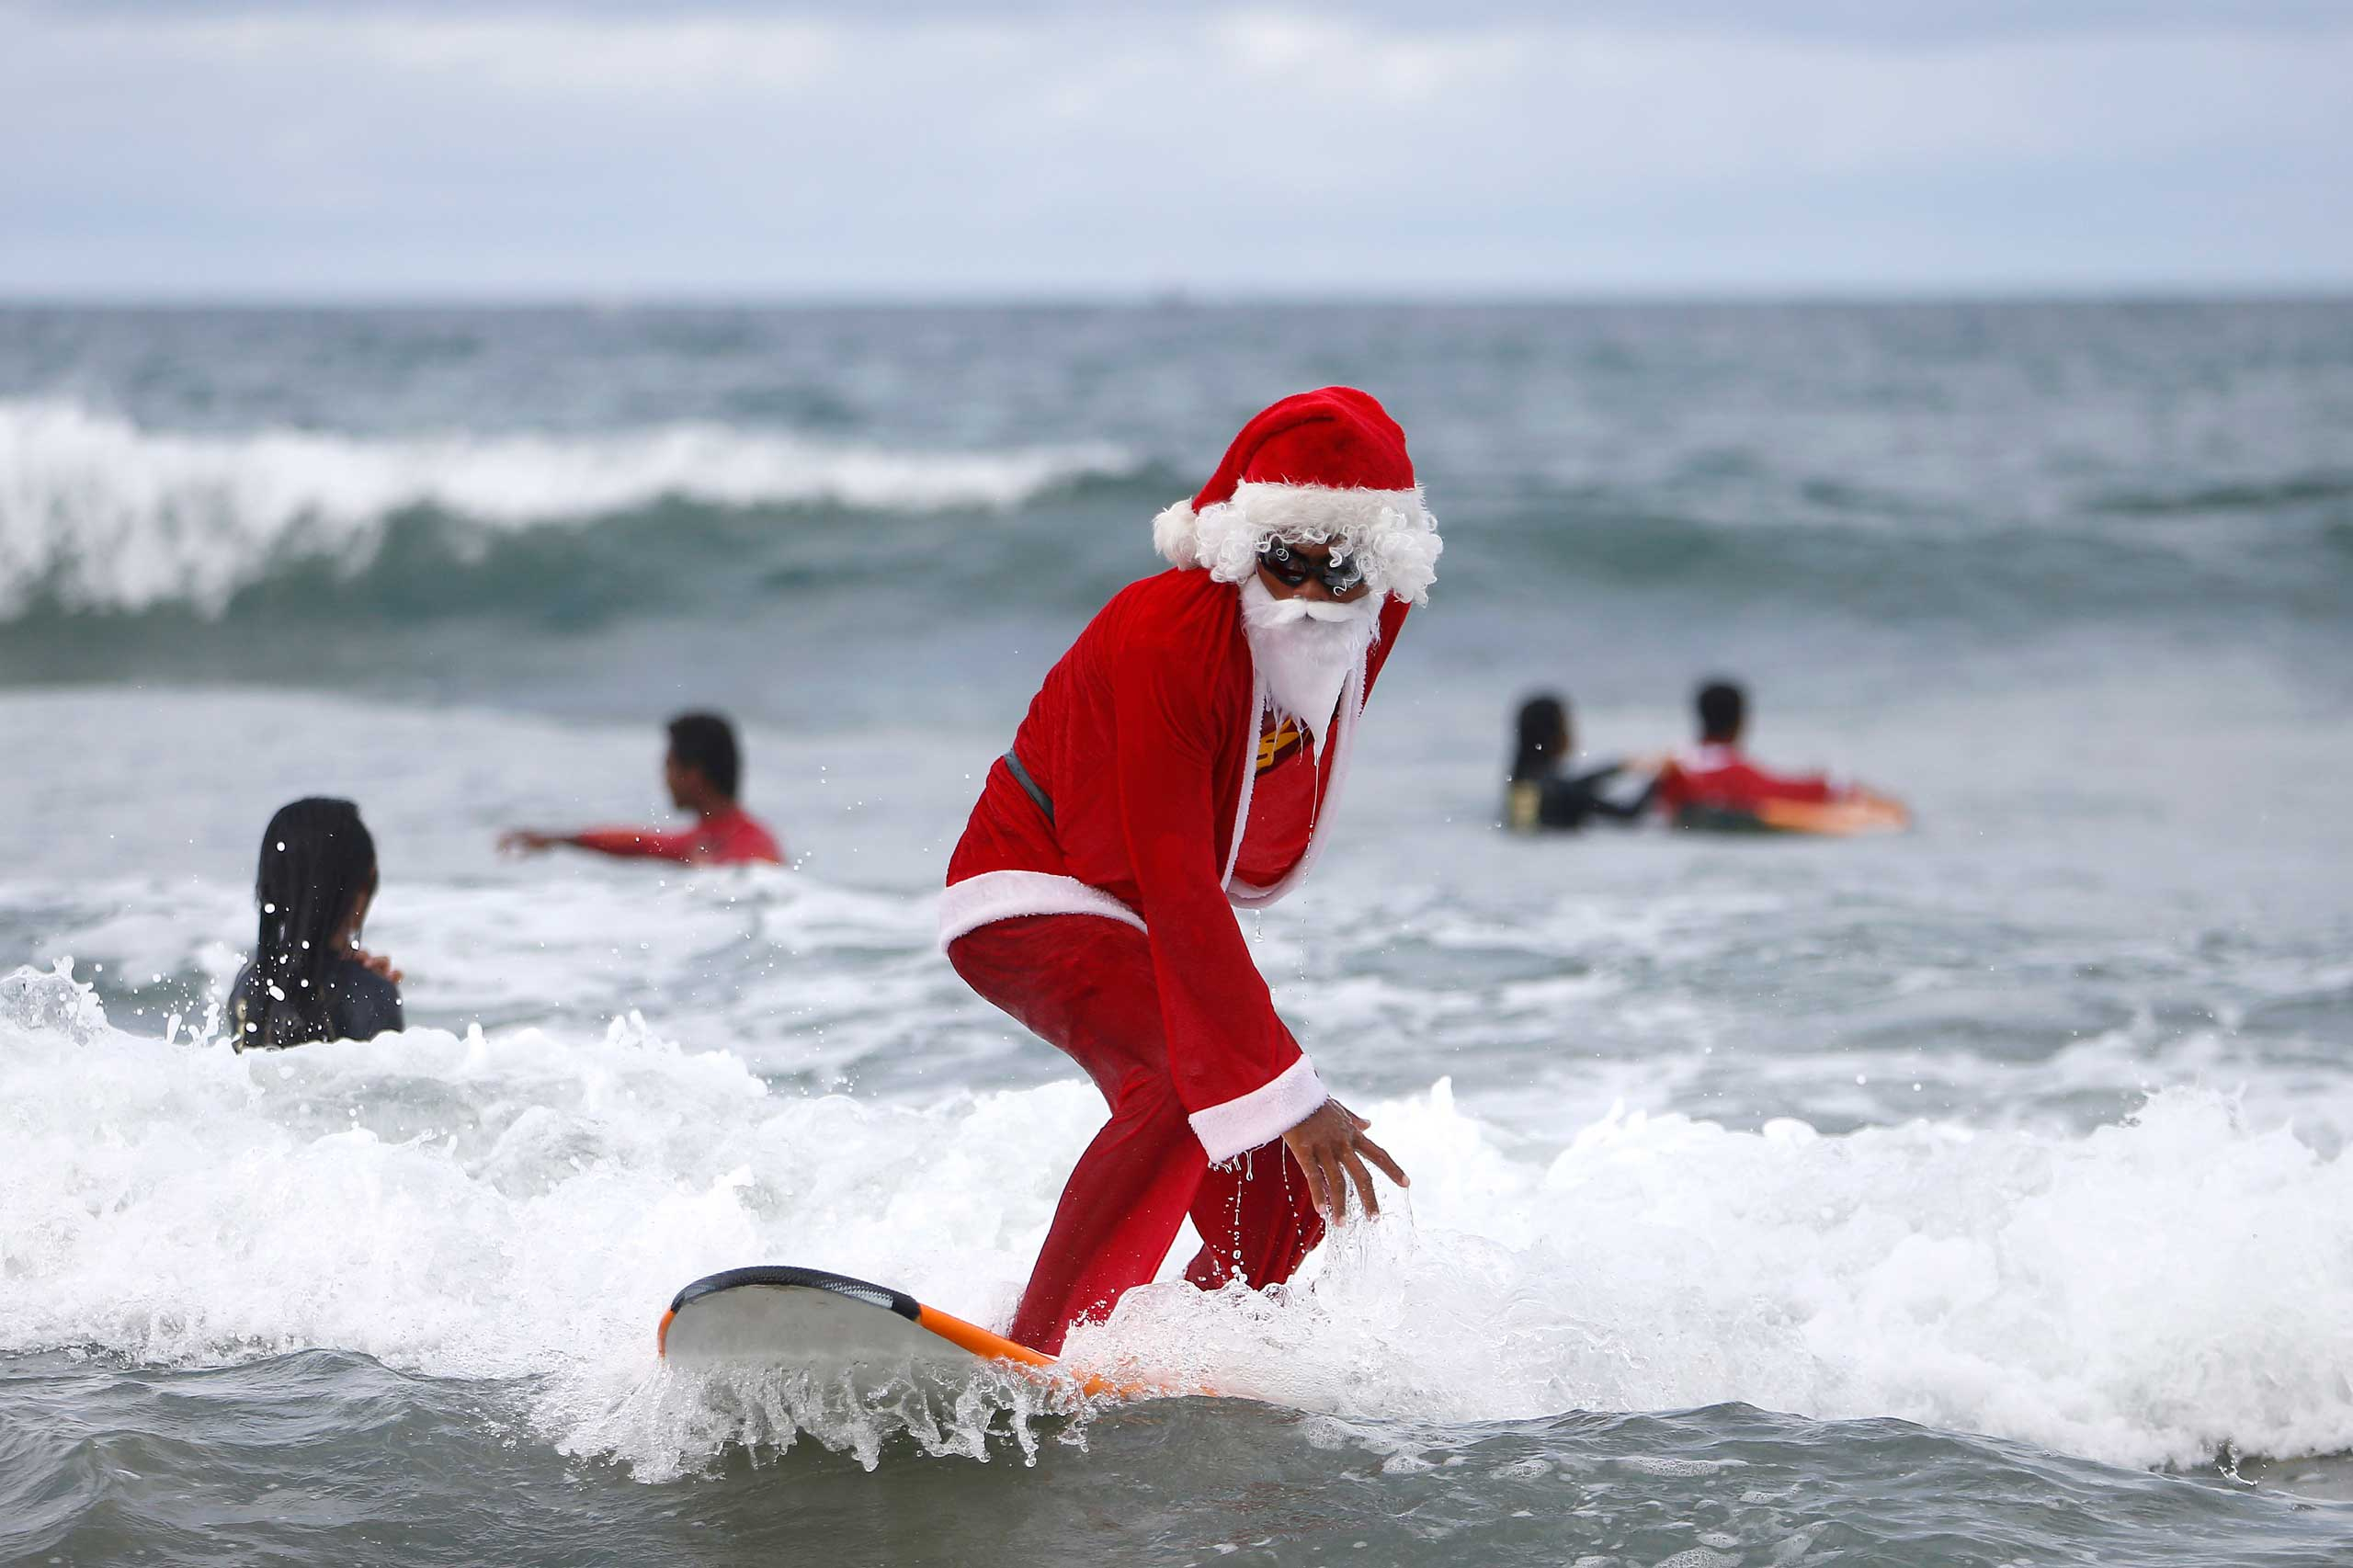 A Balinese man dressed as Santa Claus teaches orphan children how to surf at a beach in Bali, Indonesia on Dec. 7, 2014.